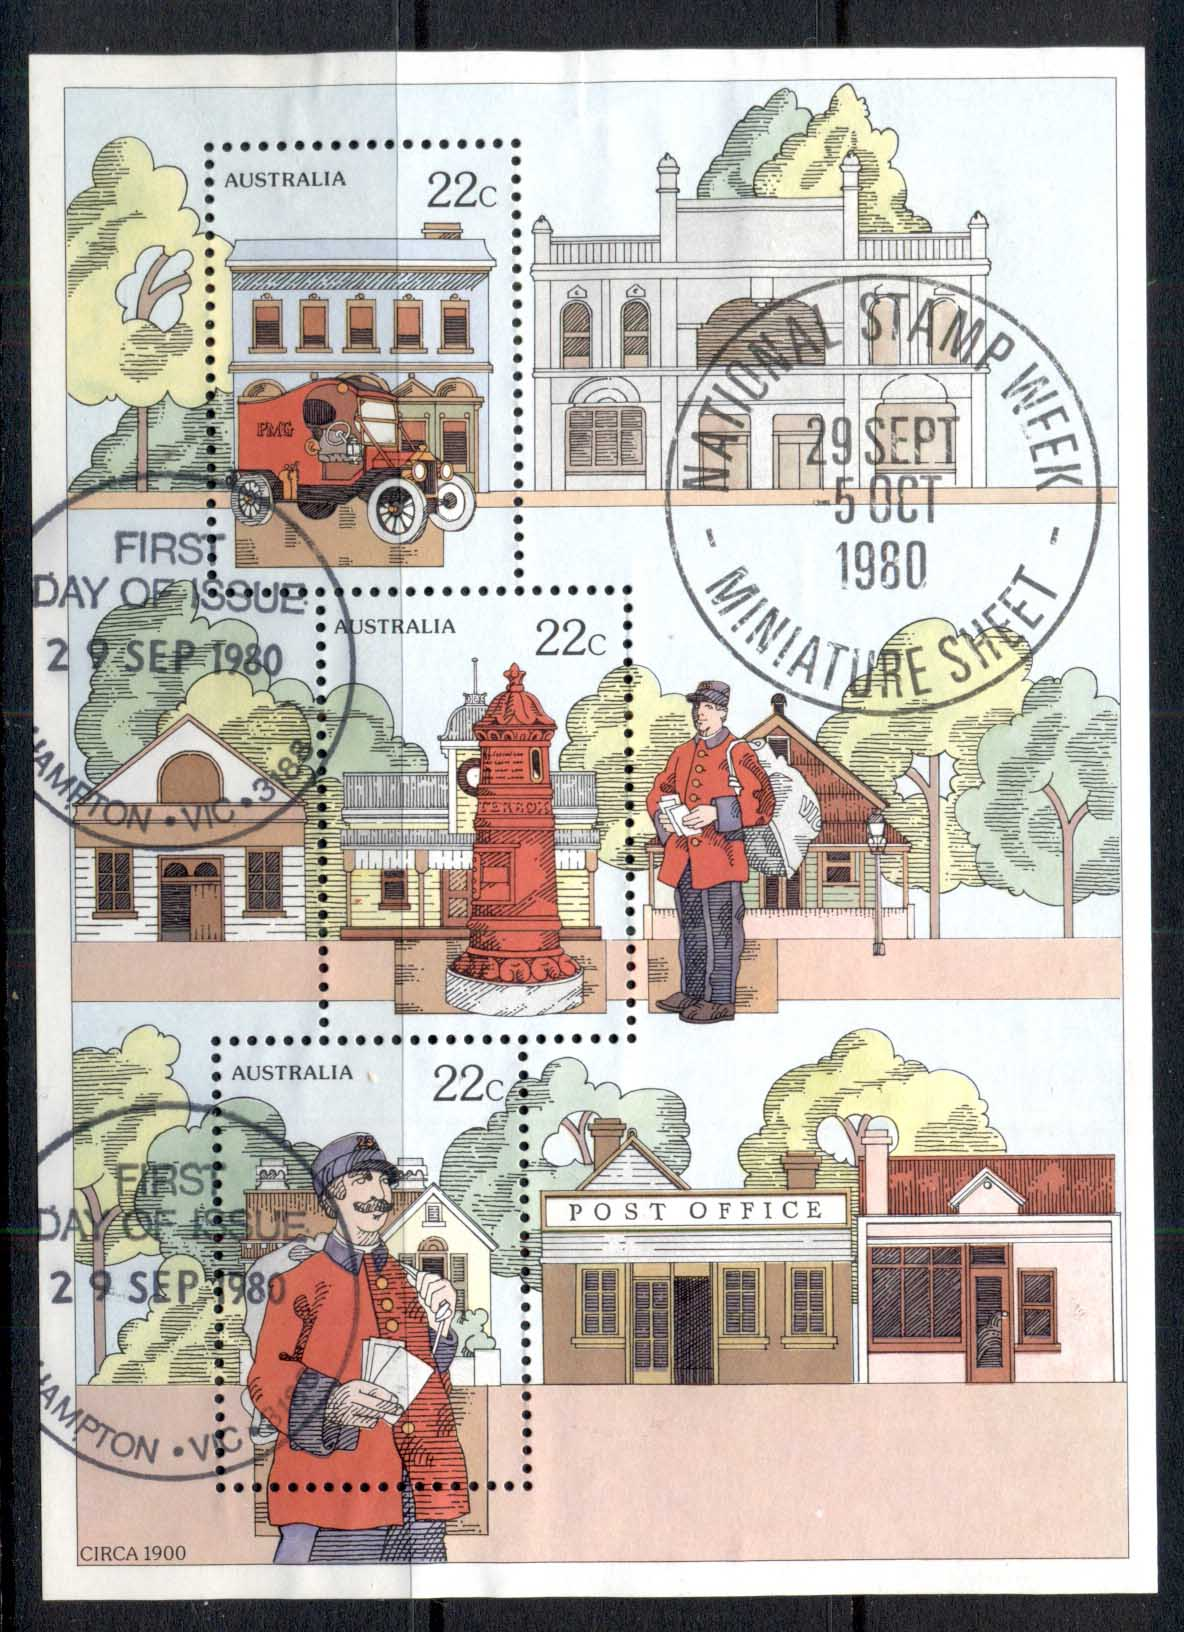 Australia 1980 Stamp Week MS Hampton FDI